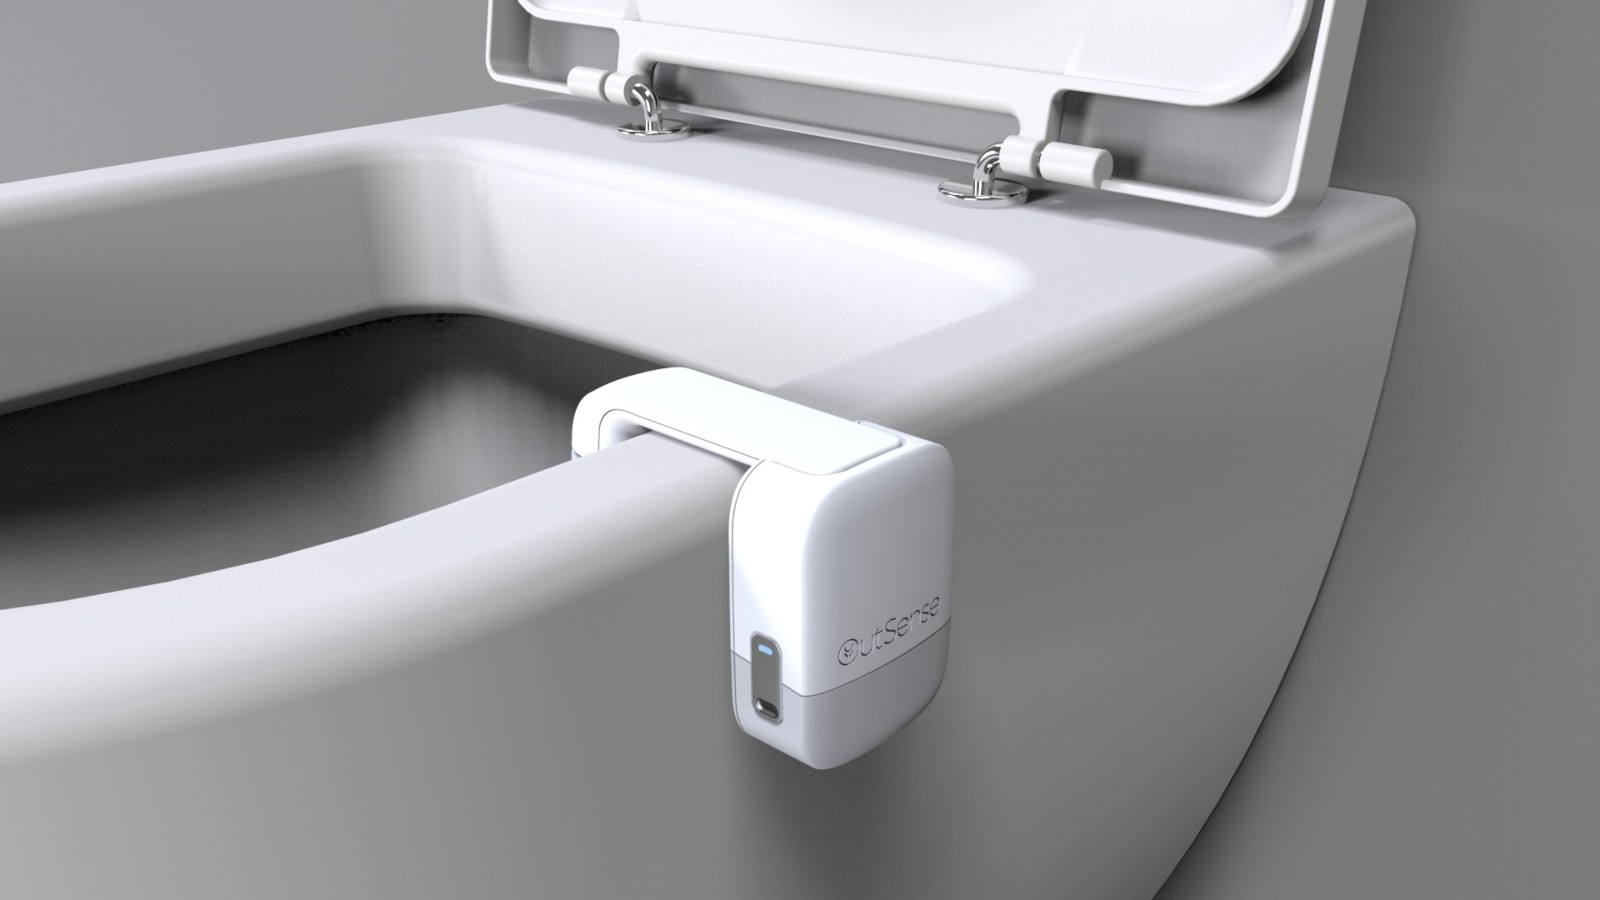 Flush with Possibilities: Toilet Sensor Set to Transform Colorectal Cancer Screening